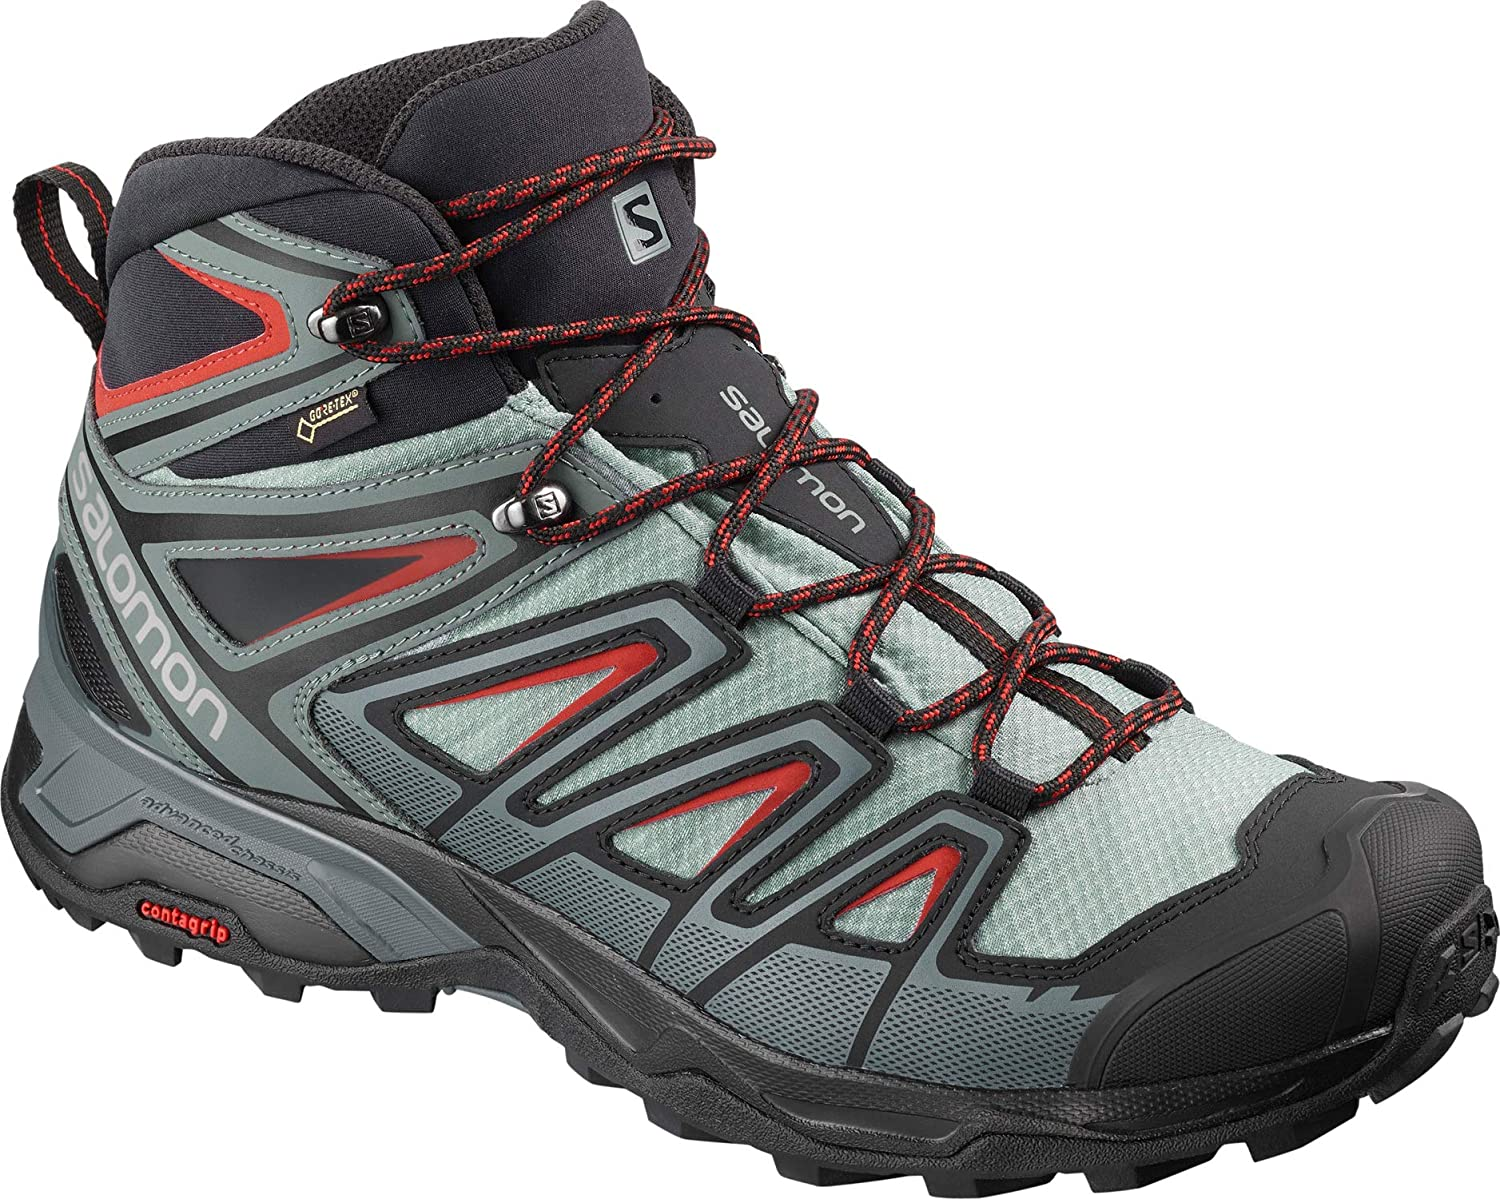 premium selection b7aec 6e468 Salomon X Ultra 3 Mid Gore-TEX Walking Boots - SS19: Amazon ...